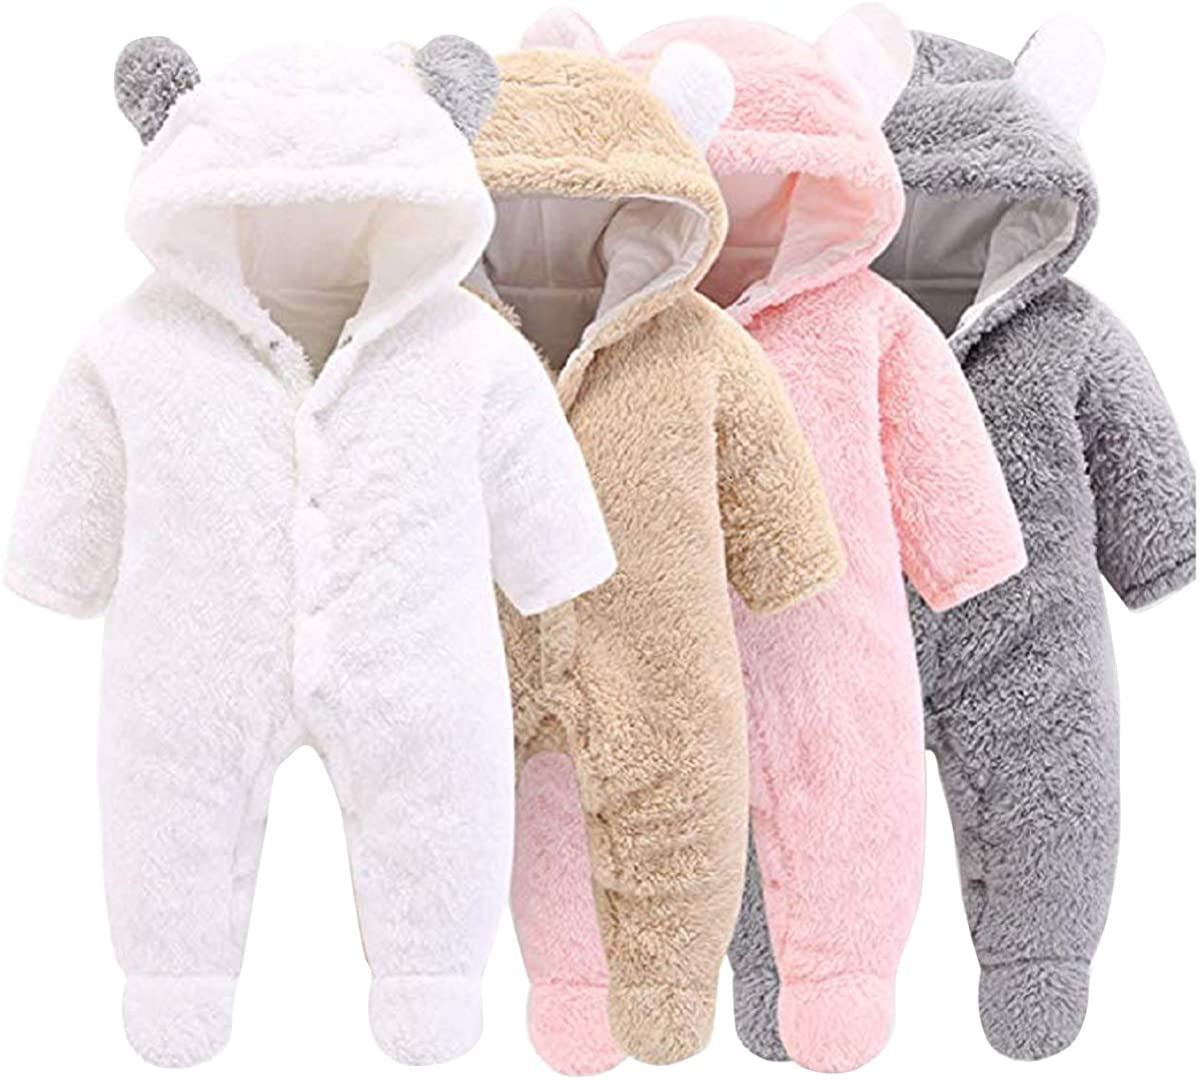 Haokaini Newborn Bear Warmer Snowsuit Cotton Fleece Hooded Romper Jumpsuit for Baby Girls Boys